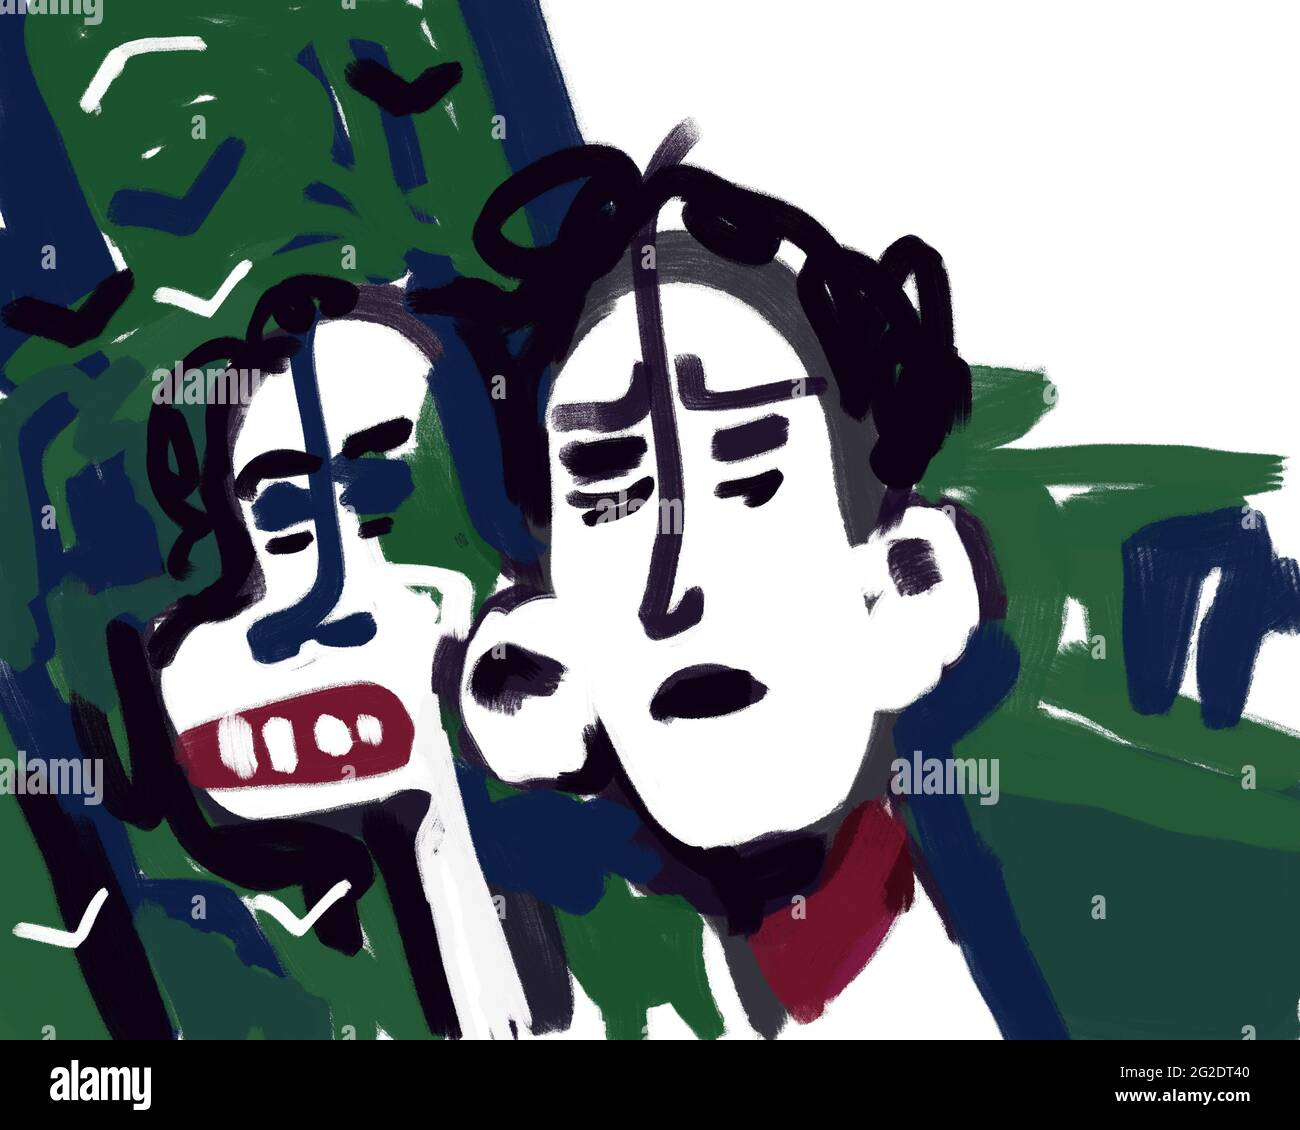 Couple walking with nature in background, sad and angry faces. Expressionist digital painting illustration for print, poster and art product. Stock Photo